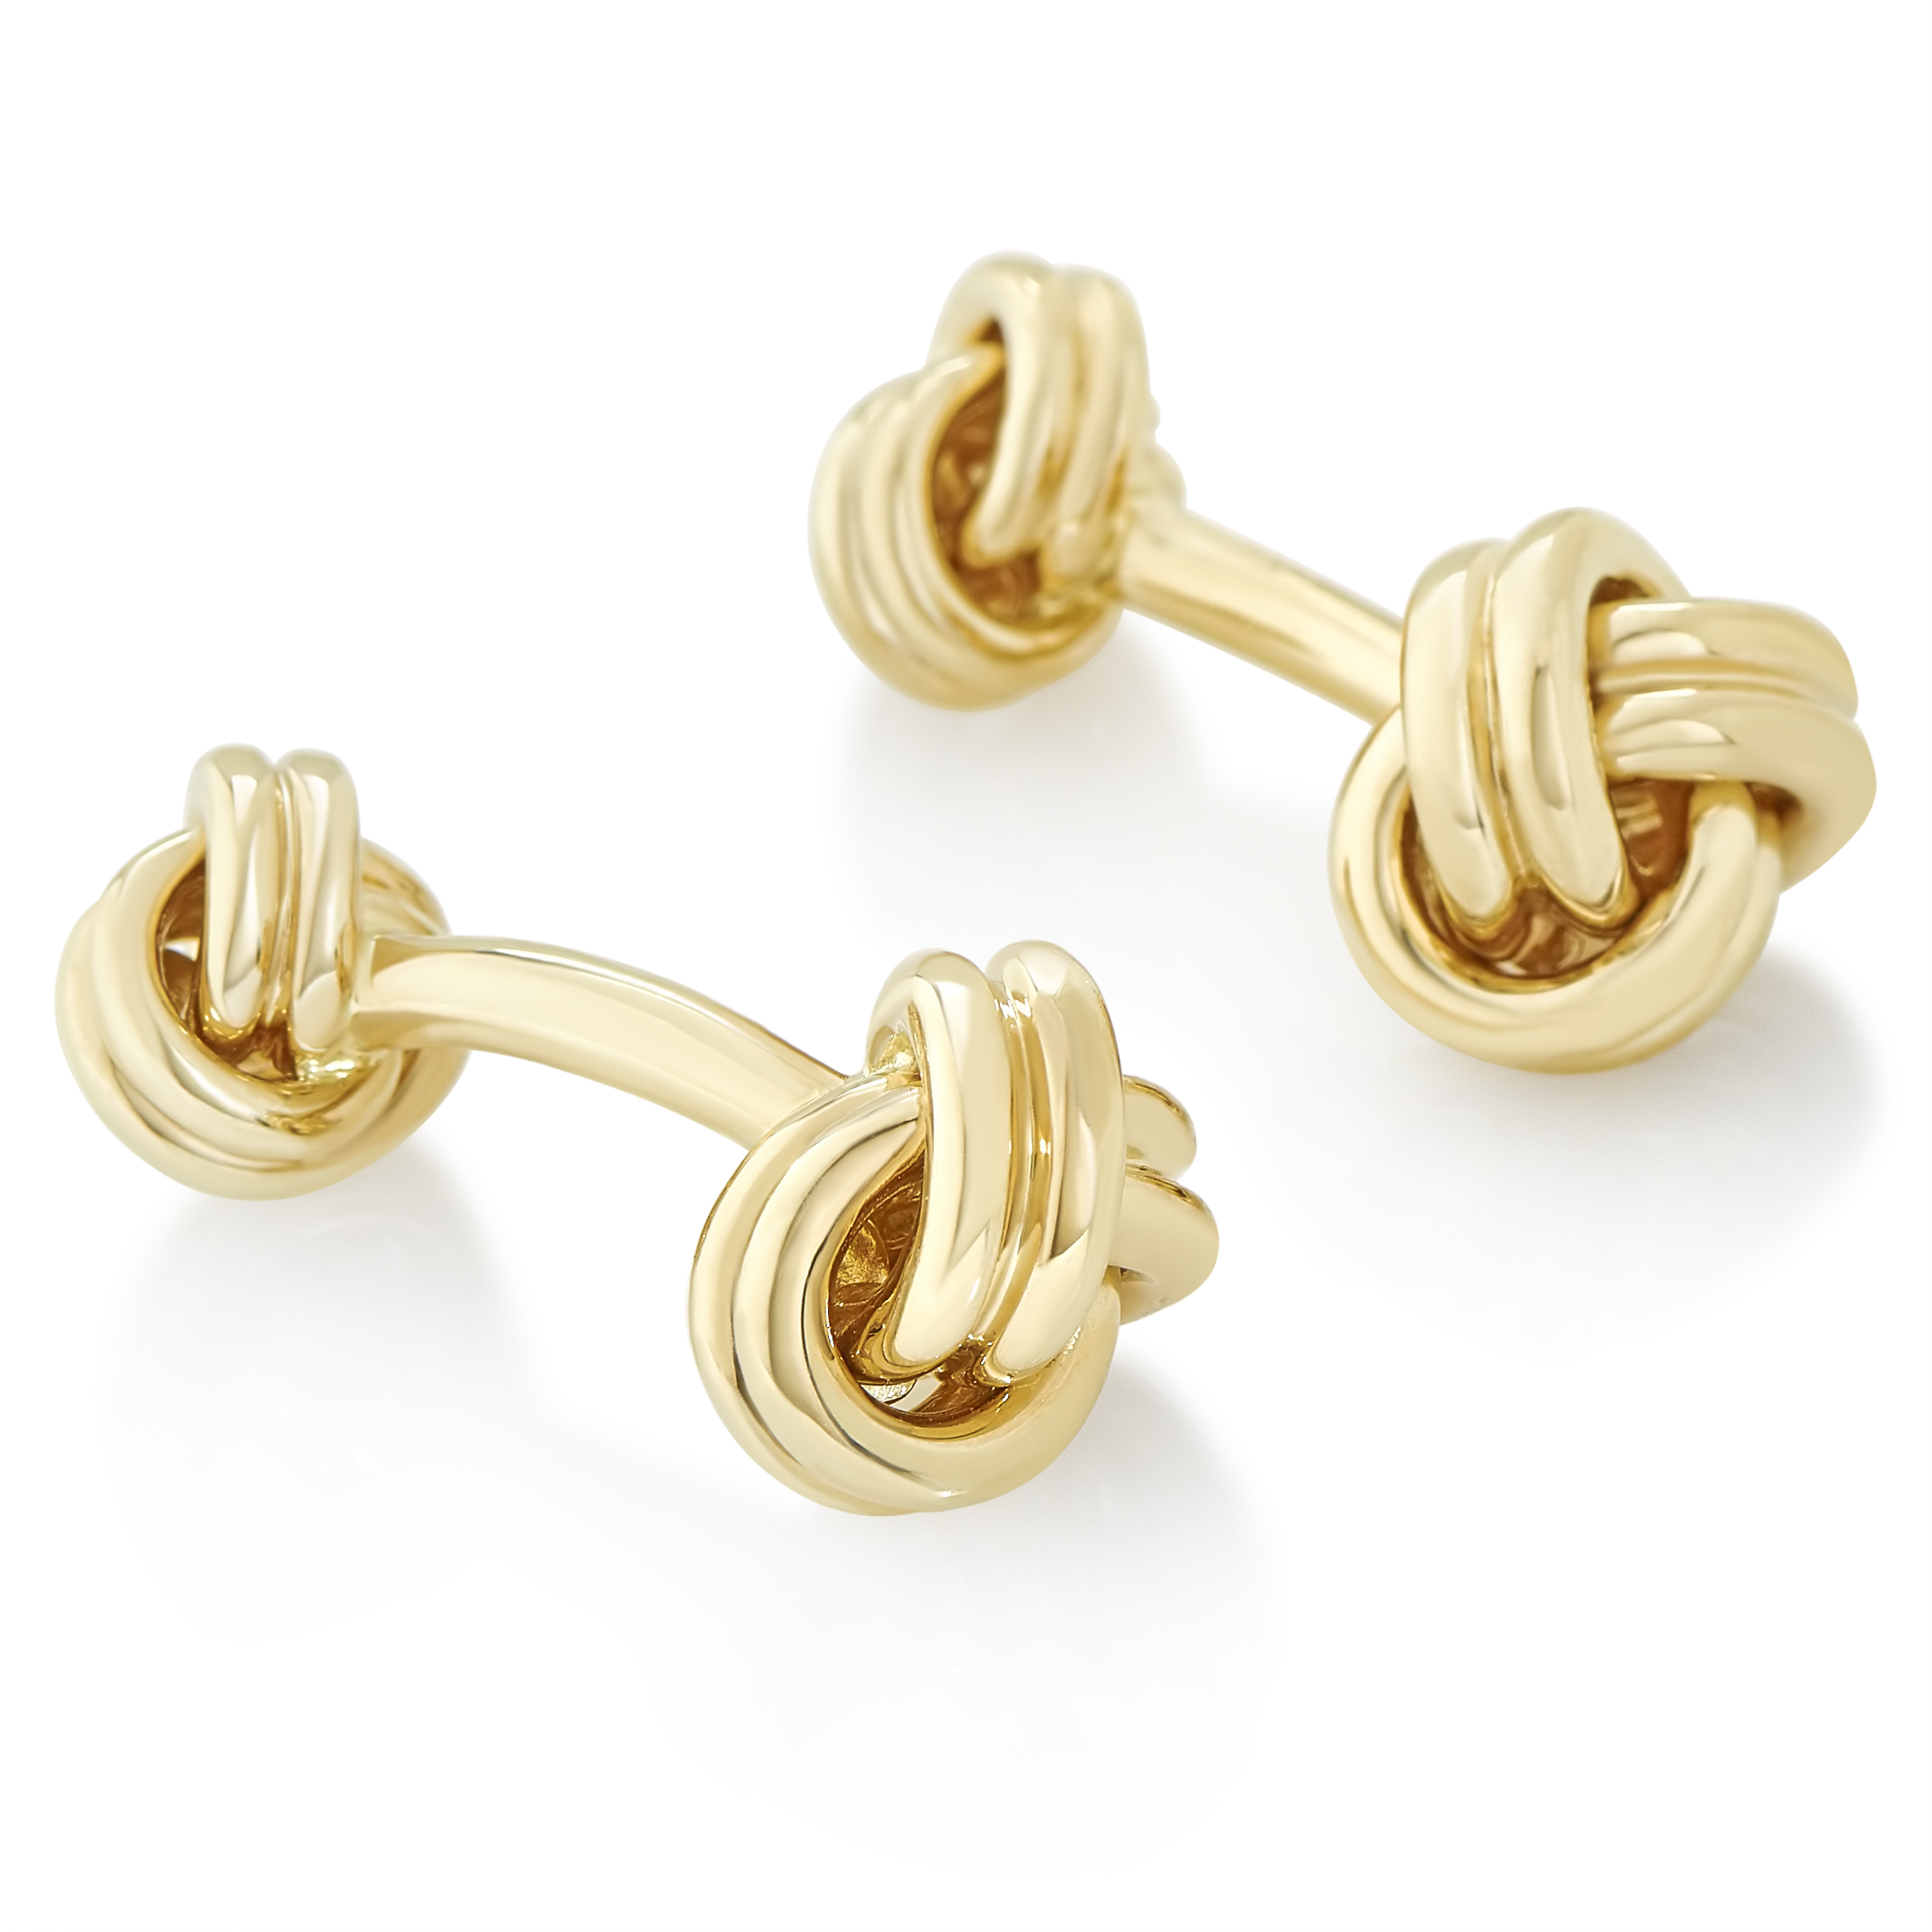 Tiffany & Co. Men's 18K Yellow Gold Knotted Cufflinks